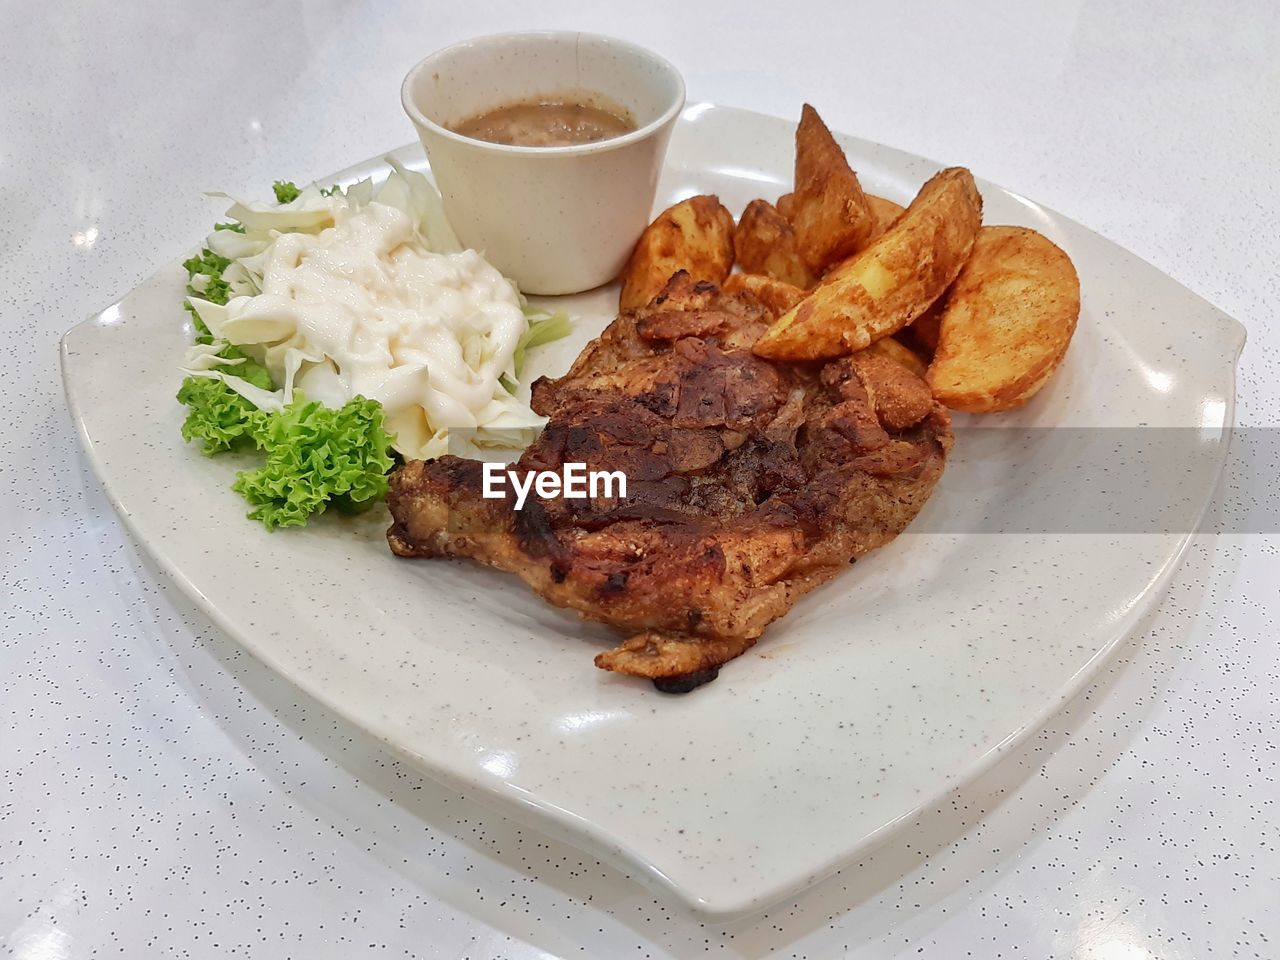 food and drink, food, plate, meat, ready-to-eat, freshness, serving size, still life, table, vegetable, indoors, high angle view, close-up, healthy eating, no people, indulgence, potato, fried, prepared potato, meal, chicken meat, fried chicken, temptation, dip, snack